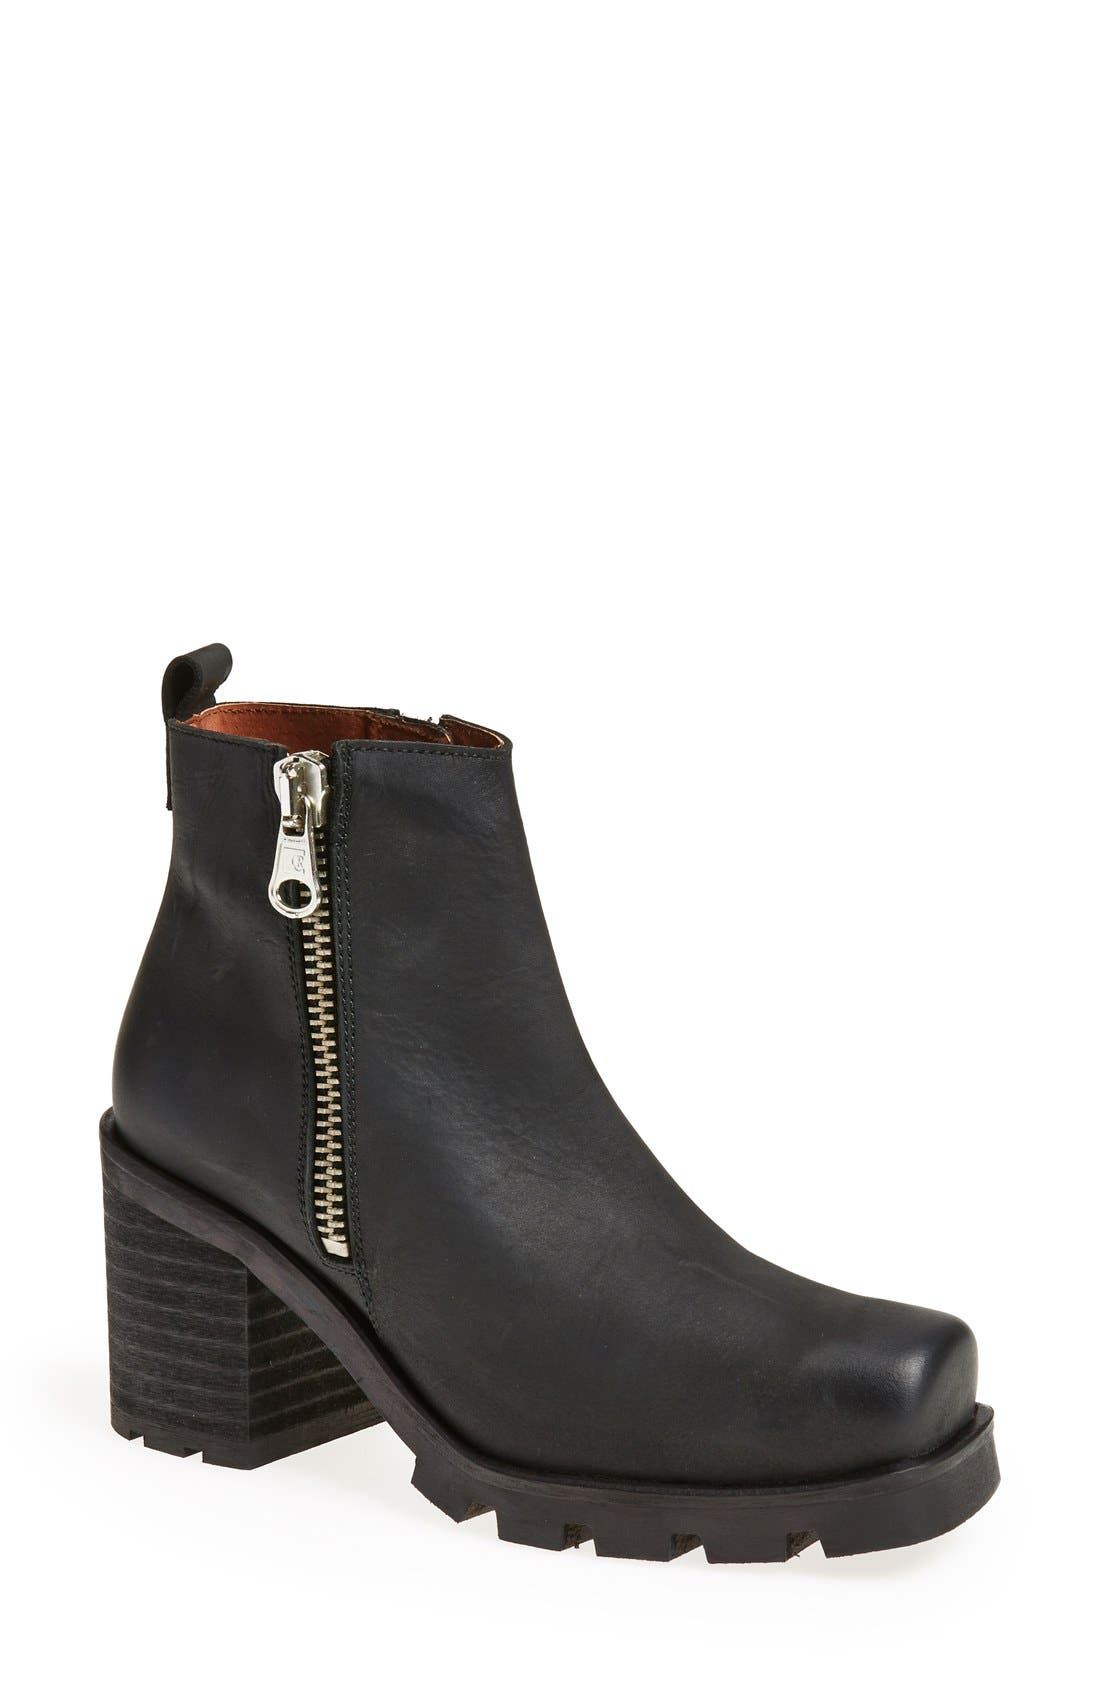 Alternate Image 1 Selected - SIXTYSEVEN 'Paige' Bootie (Women)